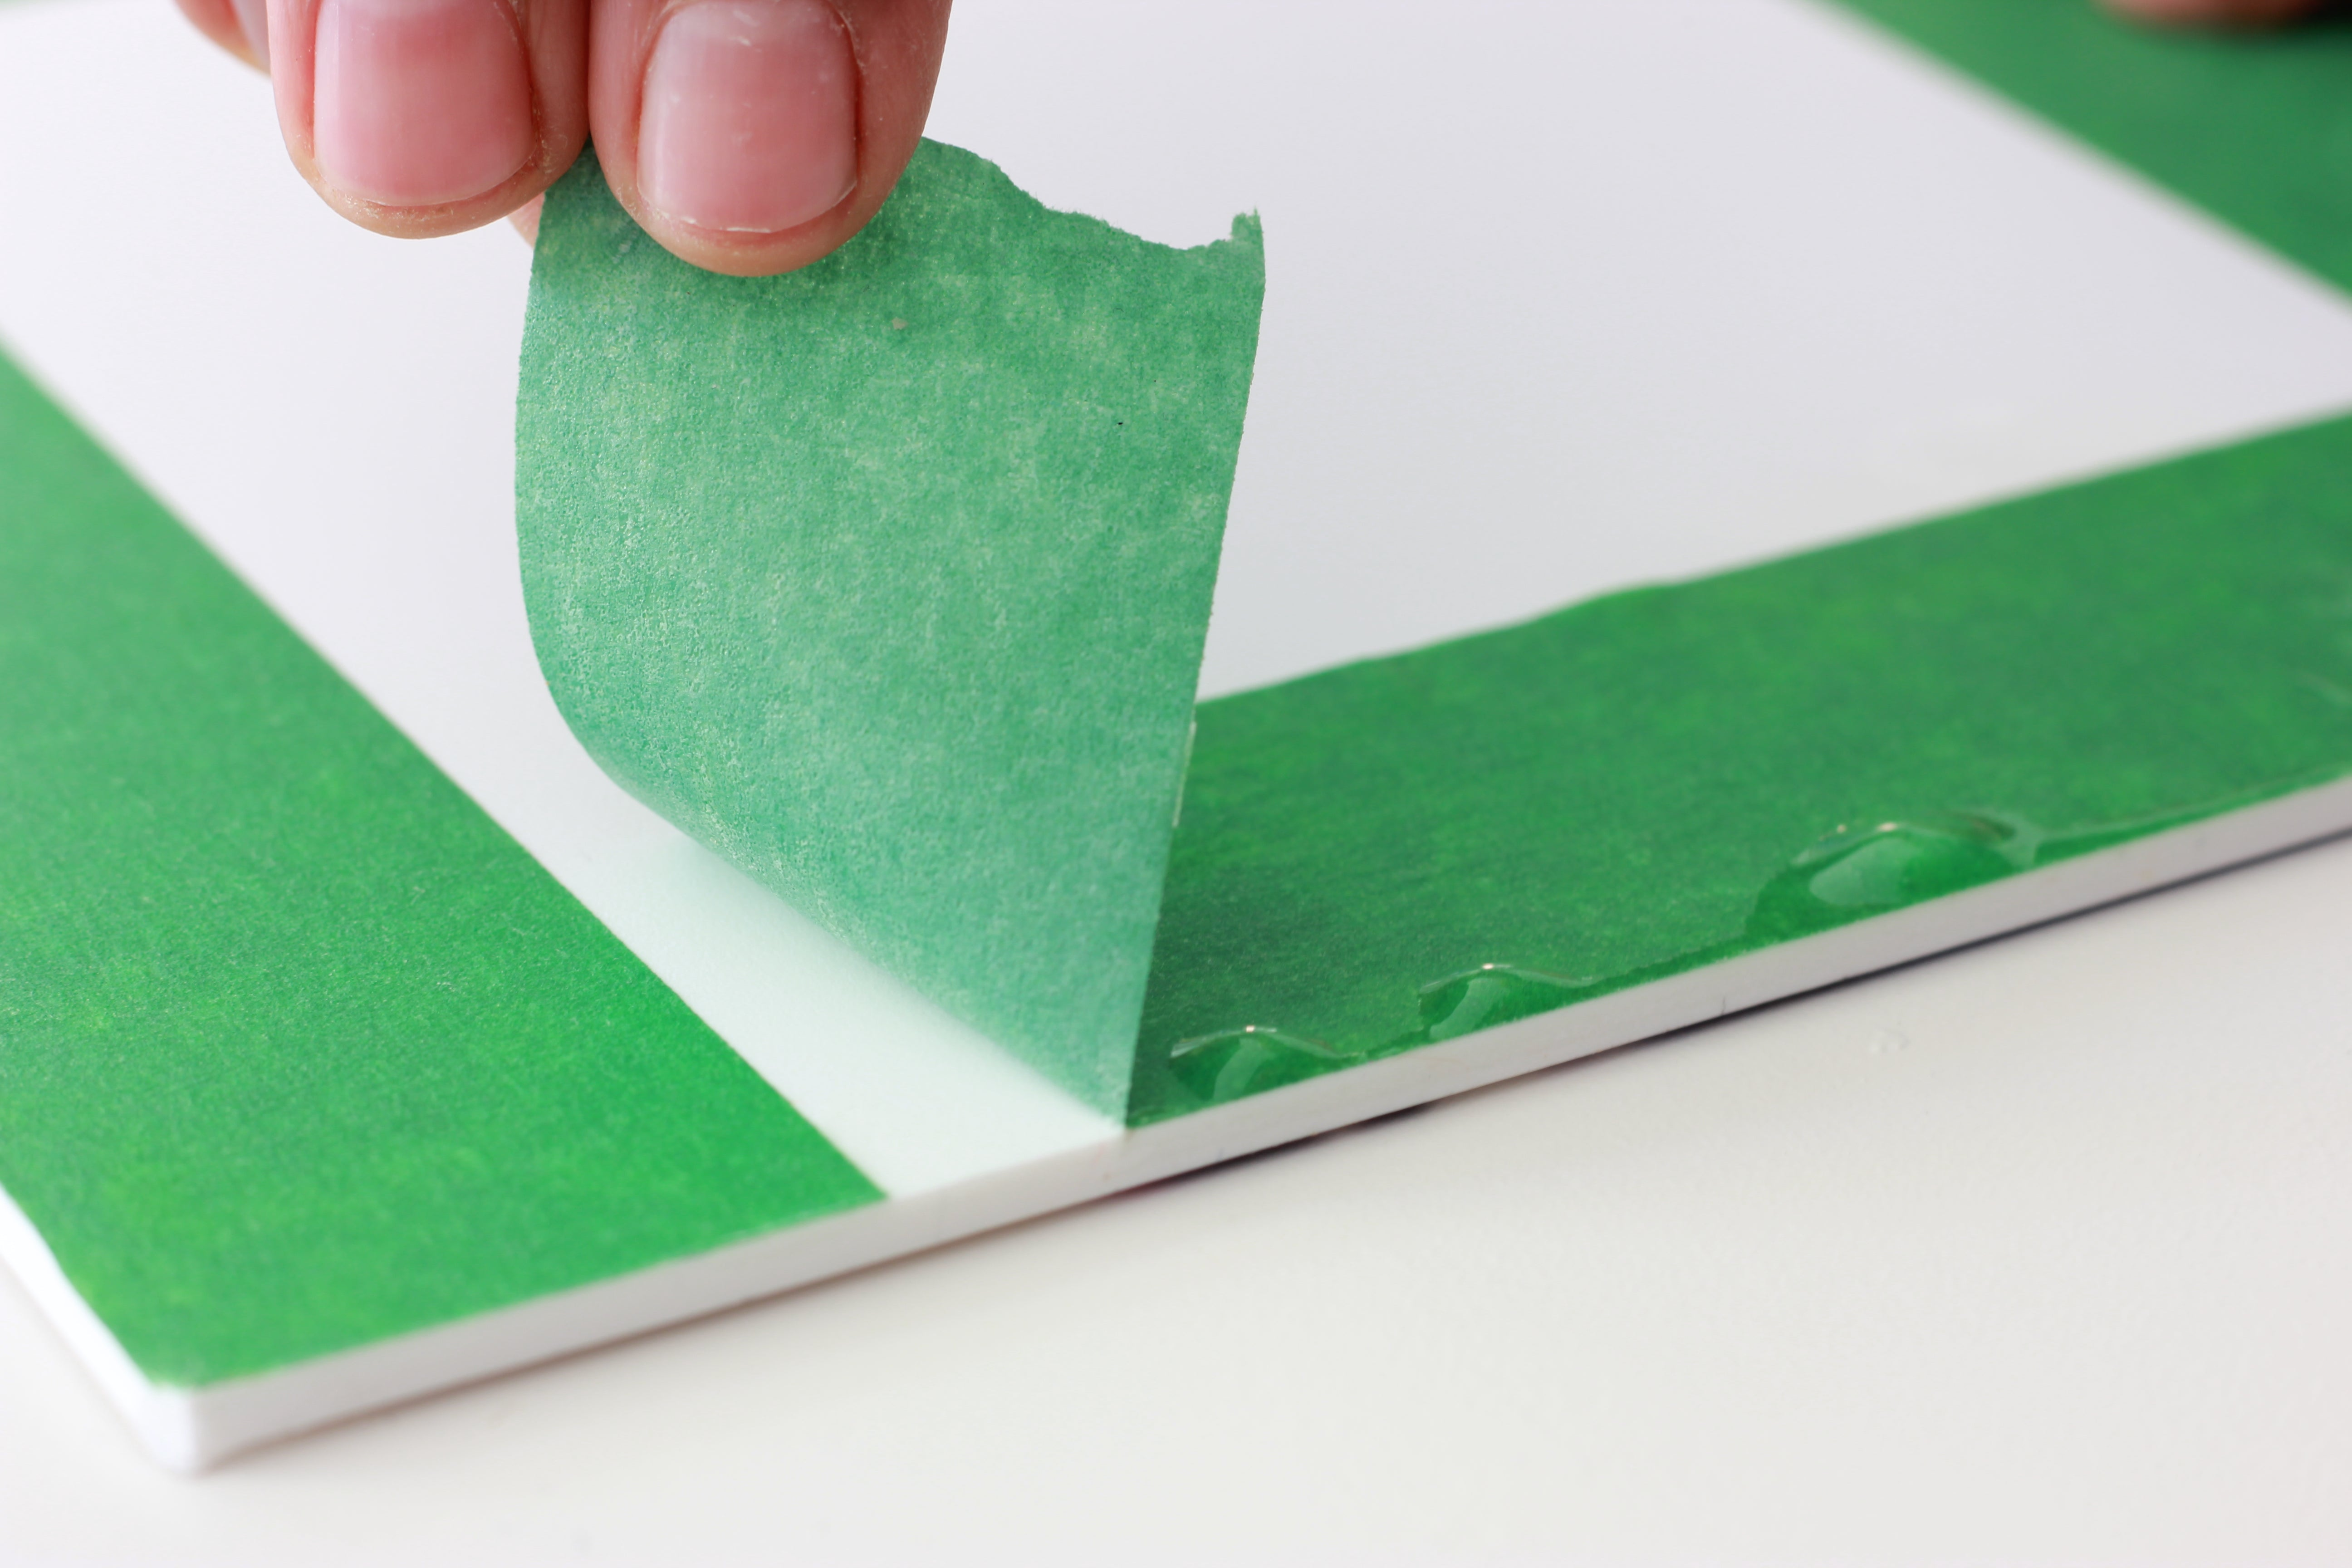 Pulling off tape with resin drips